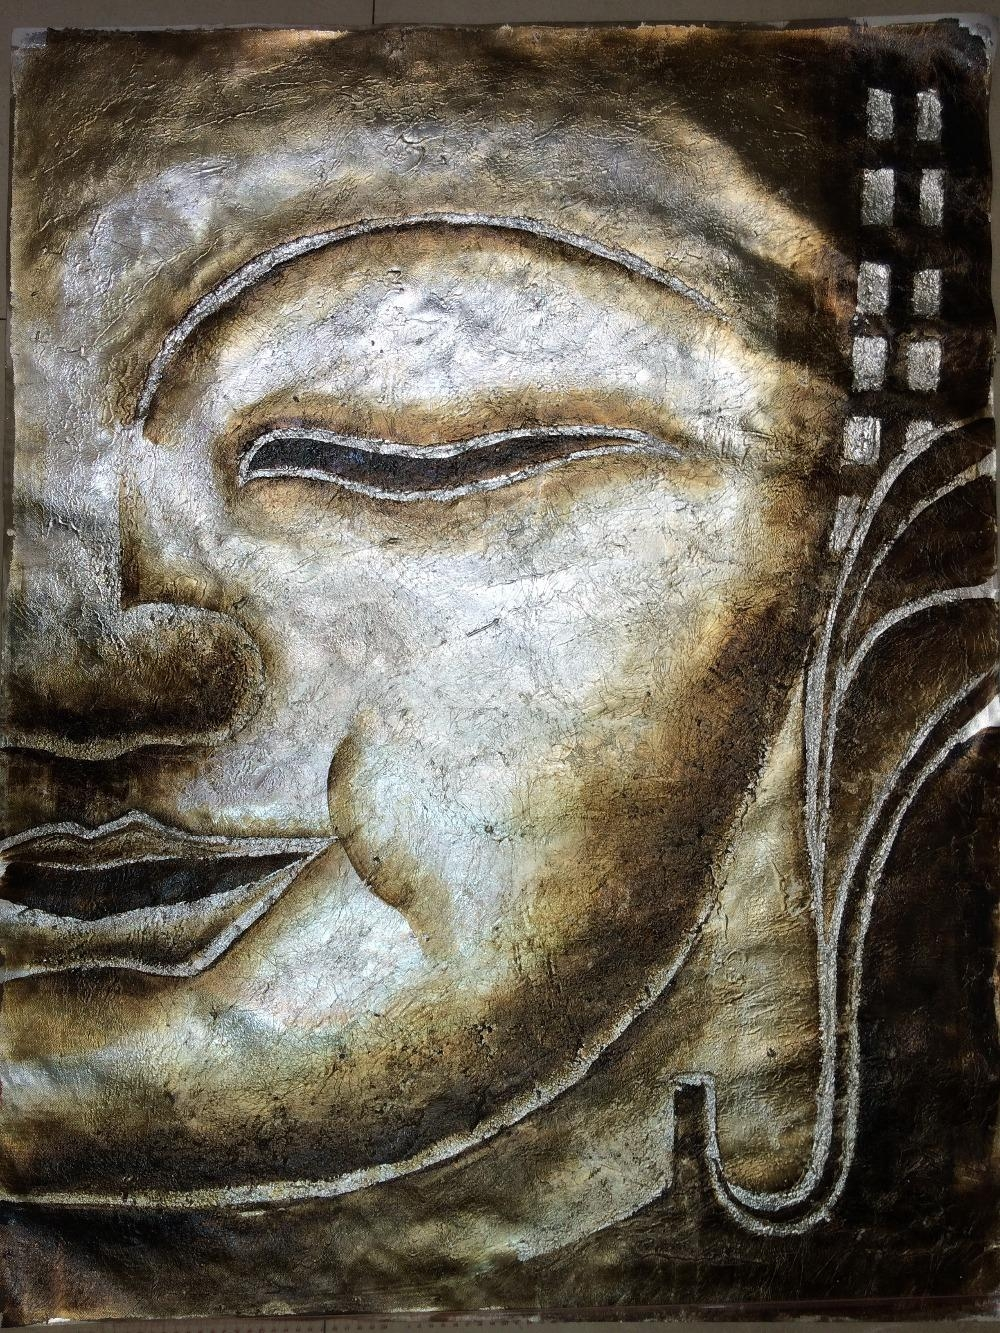 Online Get Cheap Silver Painting Aliexpress | Alibaba Group Pertaining To Silver Buddha Wall Art (View 10 of 20)